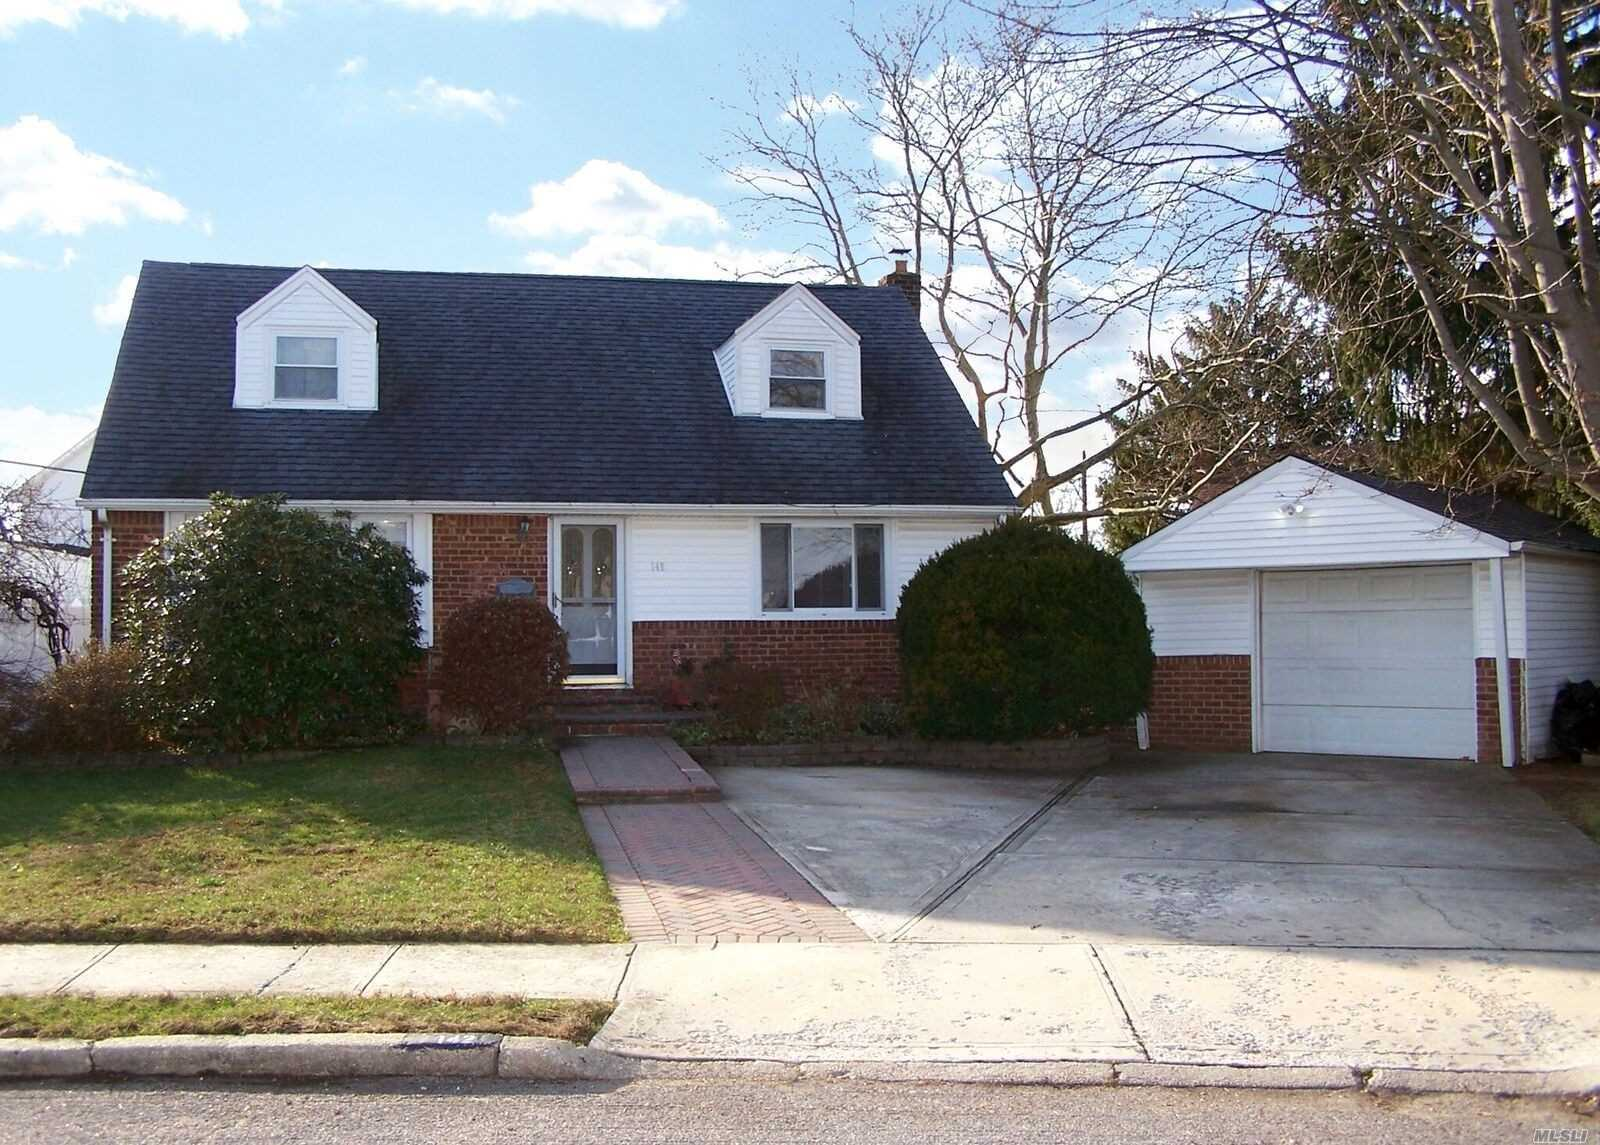 Photo of home for sale at 142 Bellmore Rd, East Meadow NY